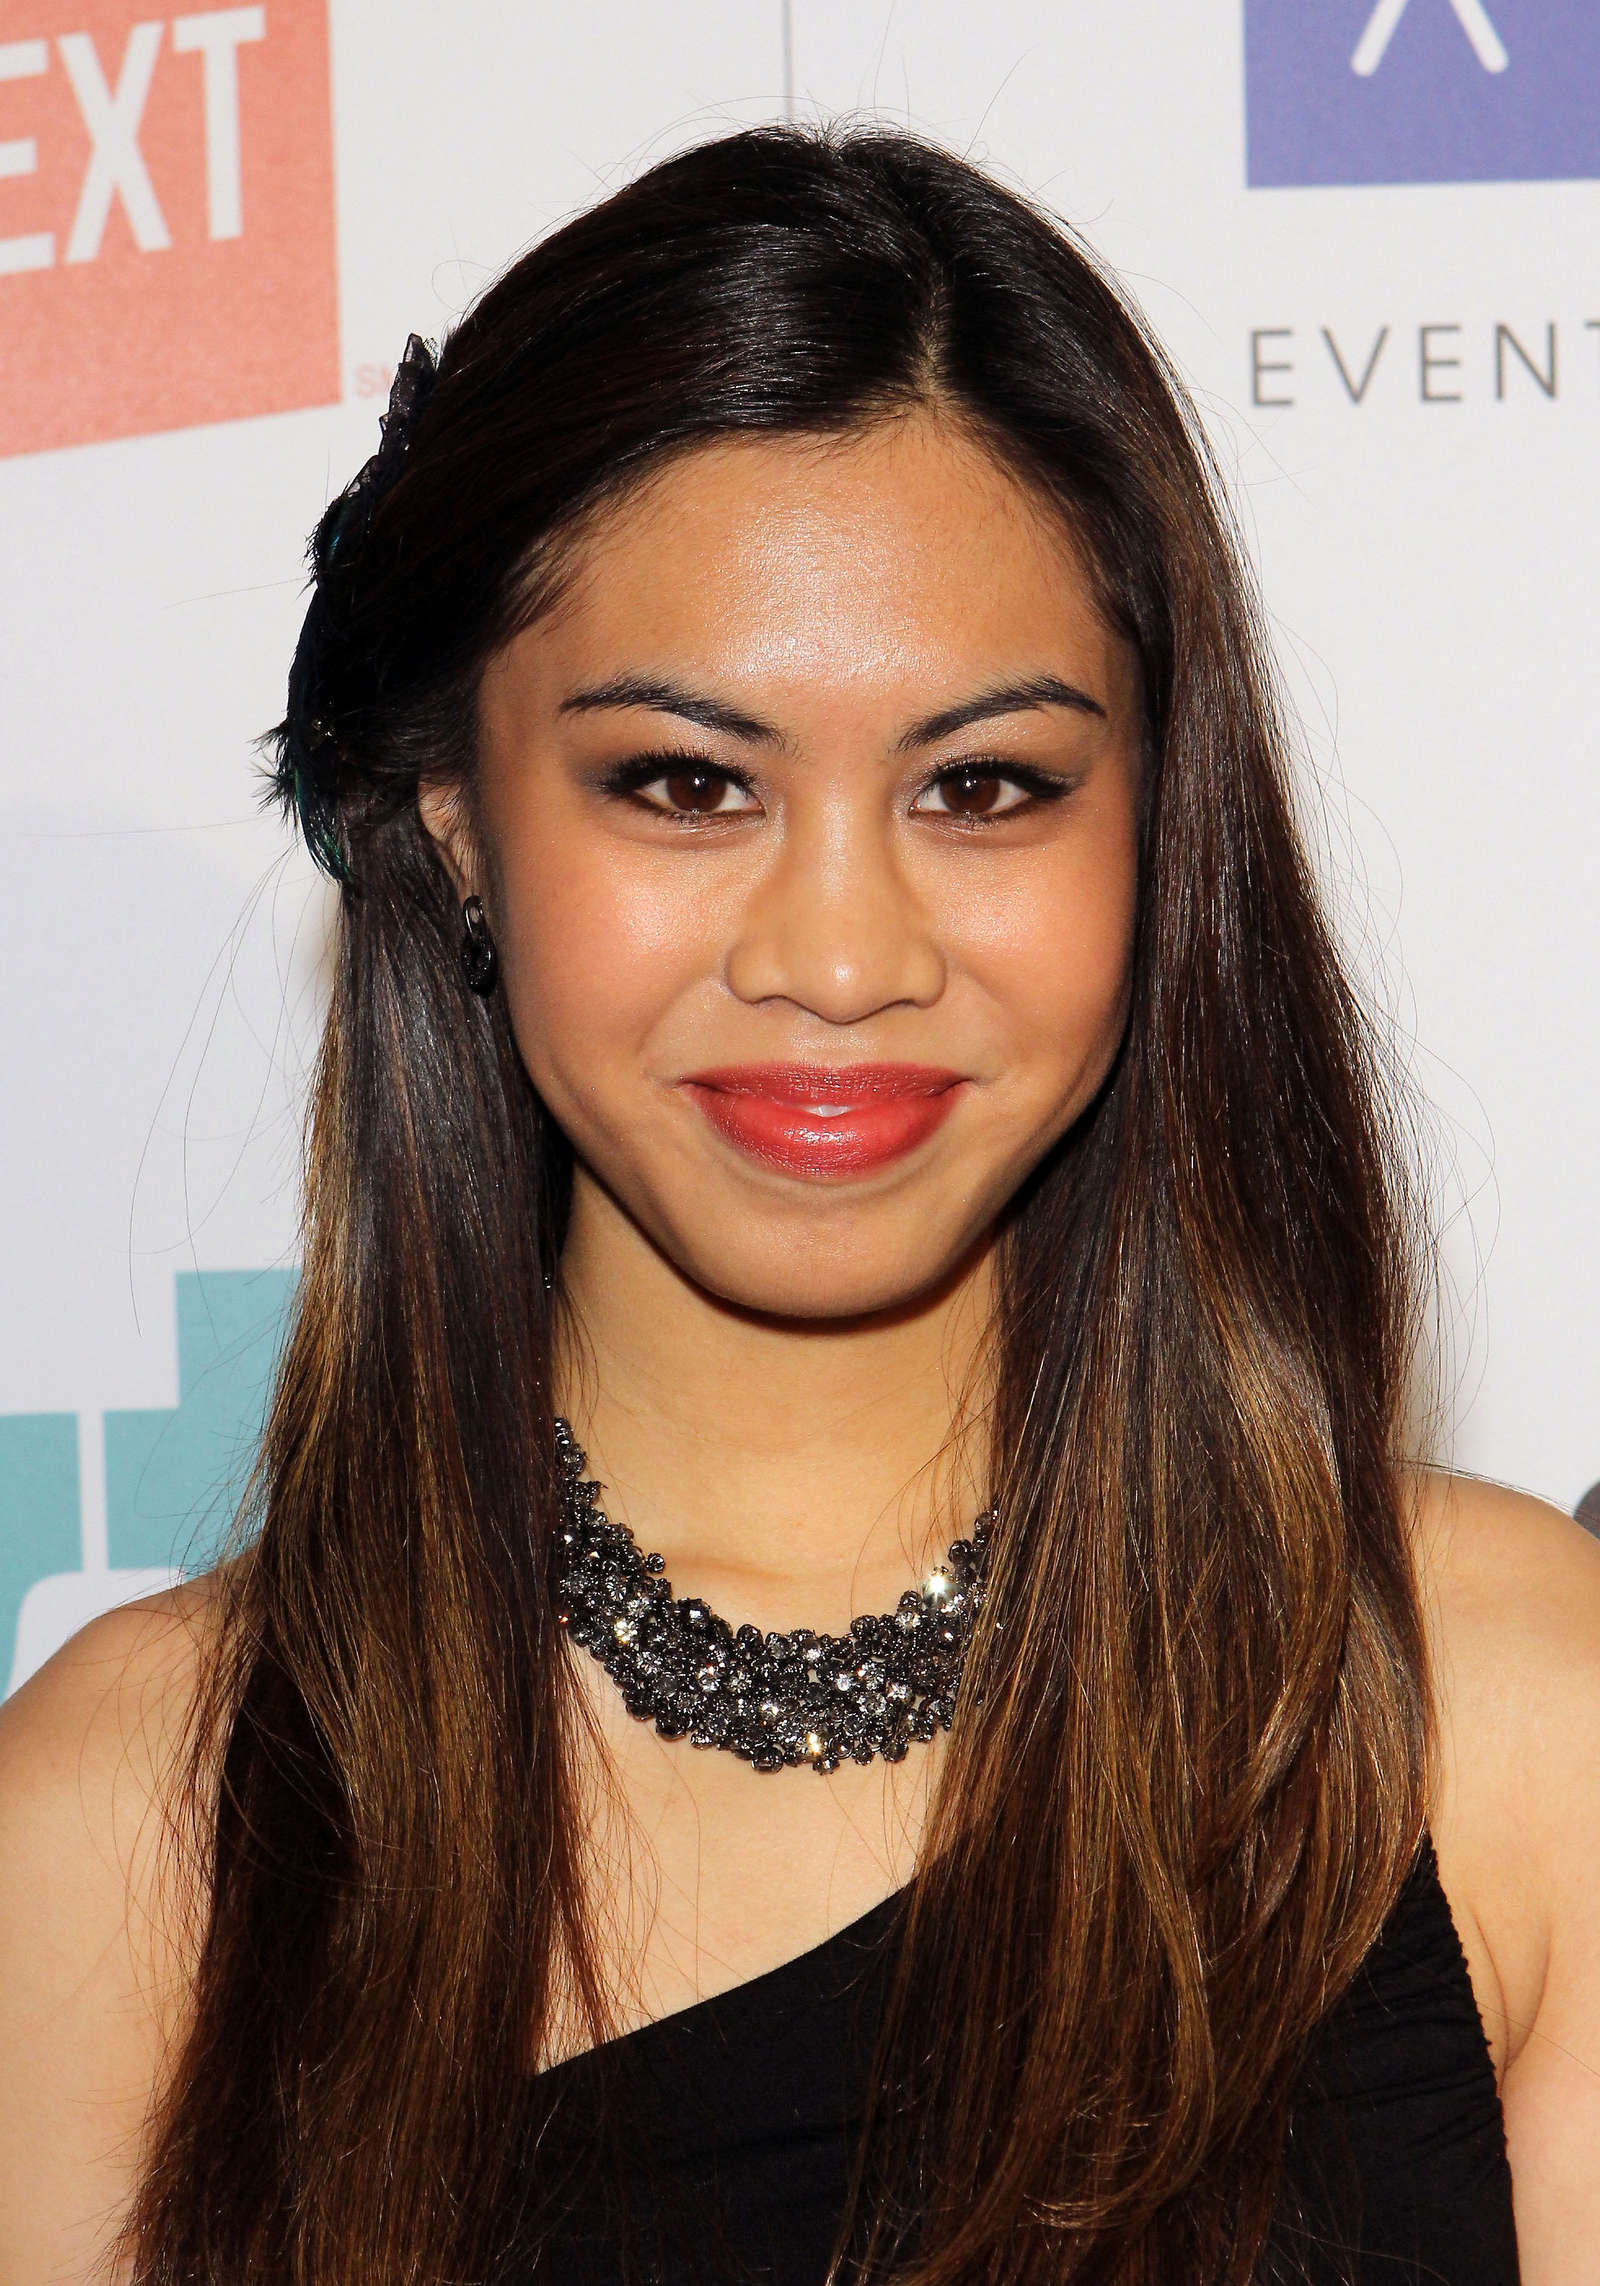 ashley argota facebookashley argota instagram, ashley argota, ashley argota the fosters, ashley argota 2015, ashley argota twitter, ashley argota wiki, ashley argota singing, ashley argota facebook, ashley argota limitless, ashley argota on icarly, ashley argota lab rats, ashley argota ethnicity, ashley argota boyfriend, ashley argota net worth, ashley argota imdb, ashley argota height, ashley argota slimed, ashley argota bikini, ashley argota parents